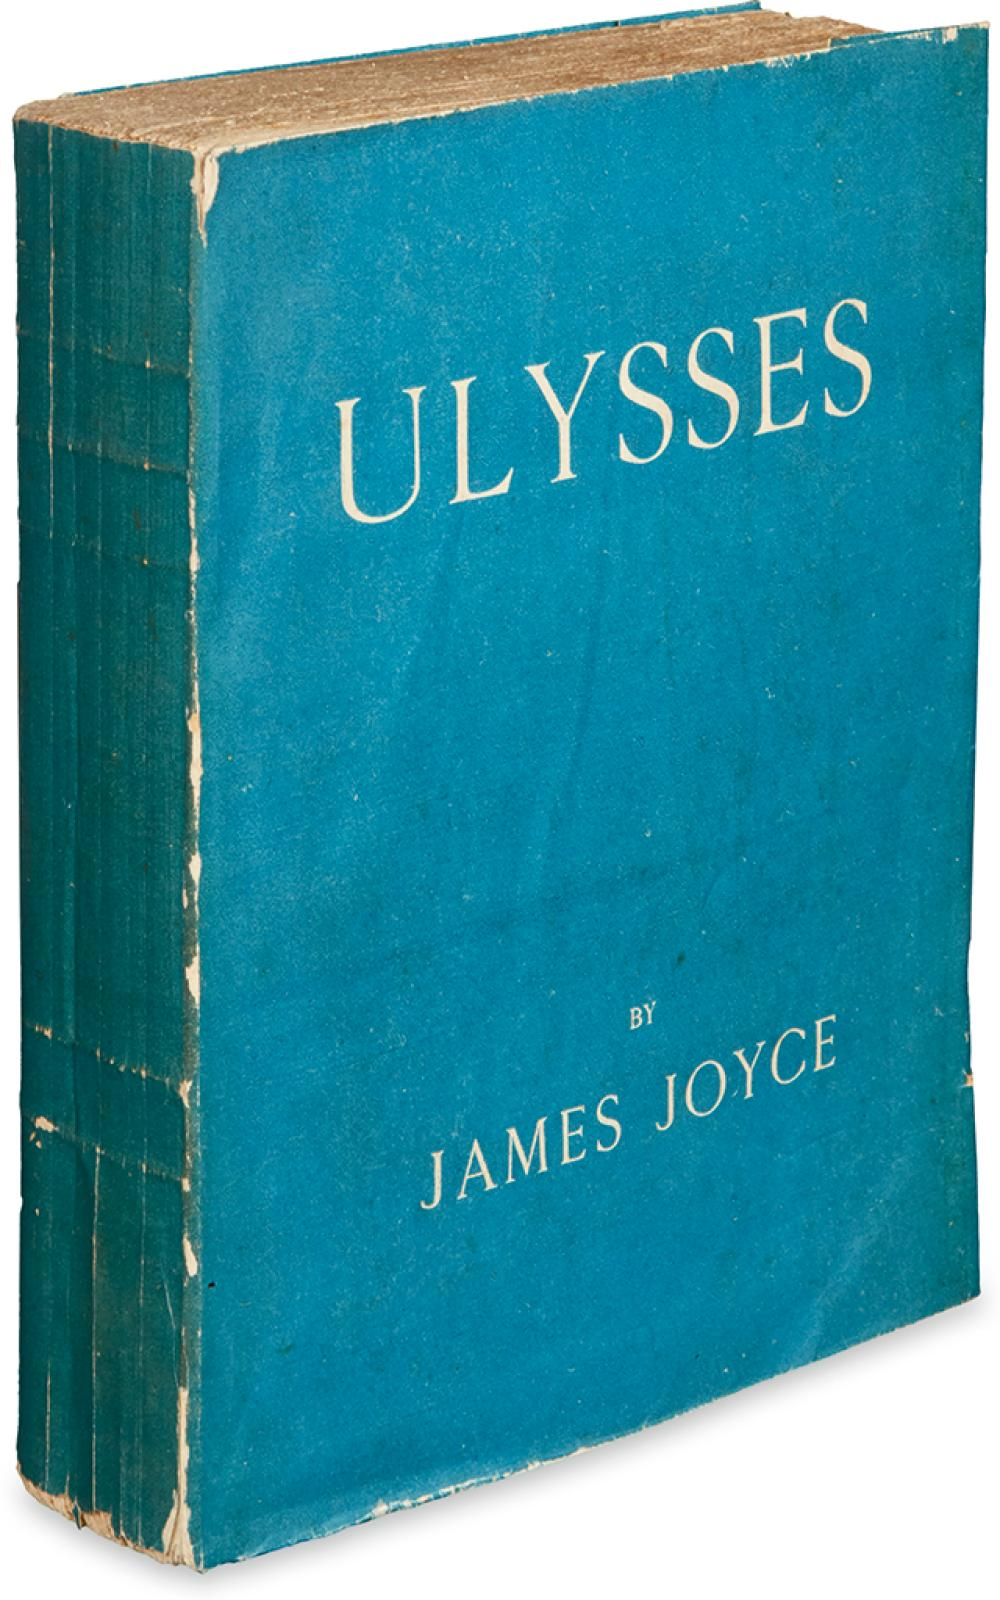 JOYCE, JAMES. Ulysses.